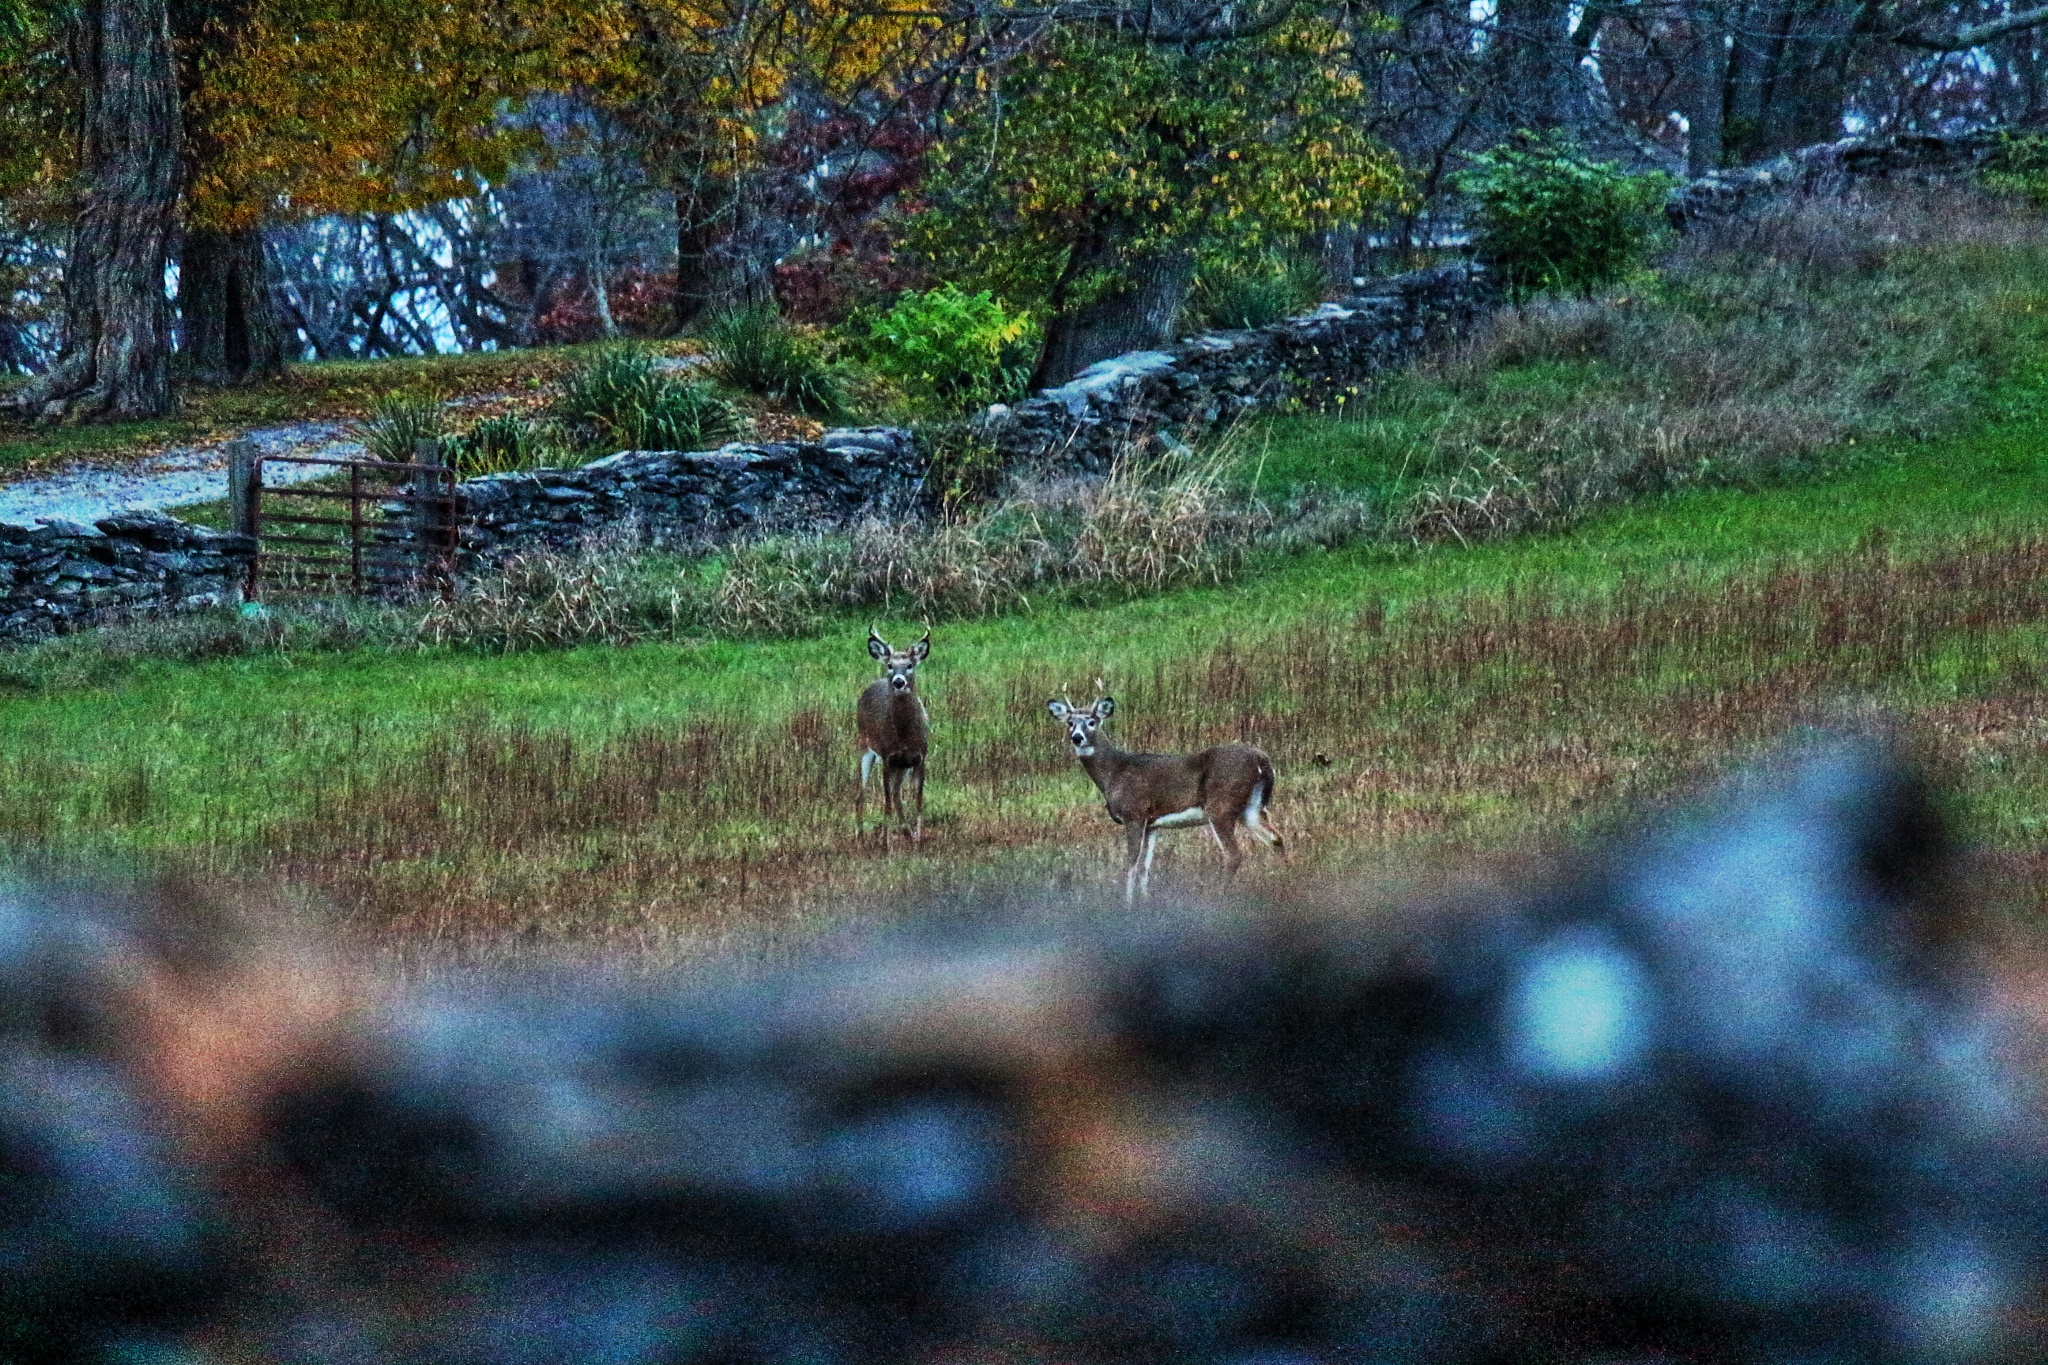 Bucks in the field by Clark L. Roberts